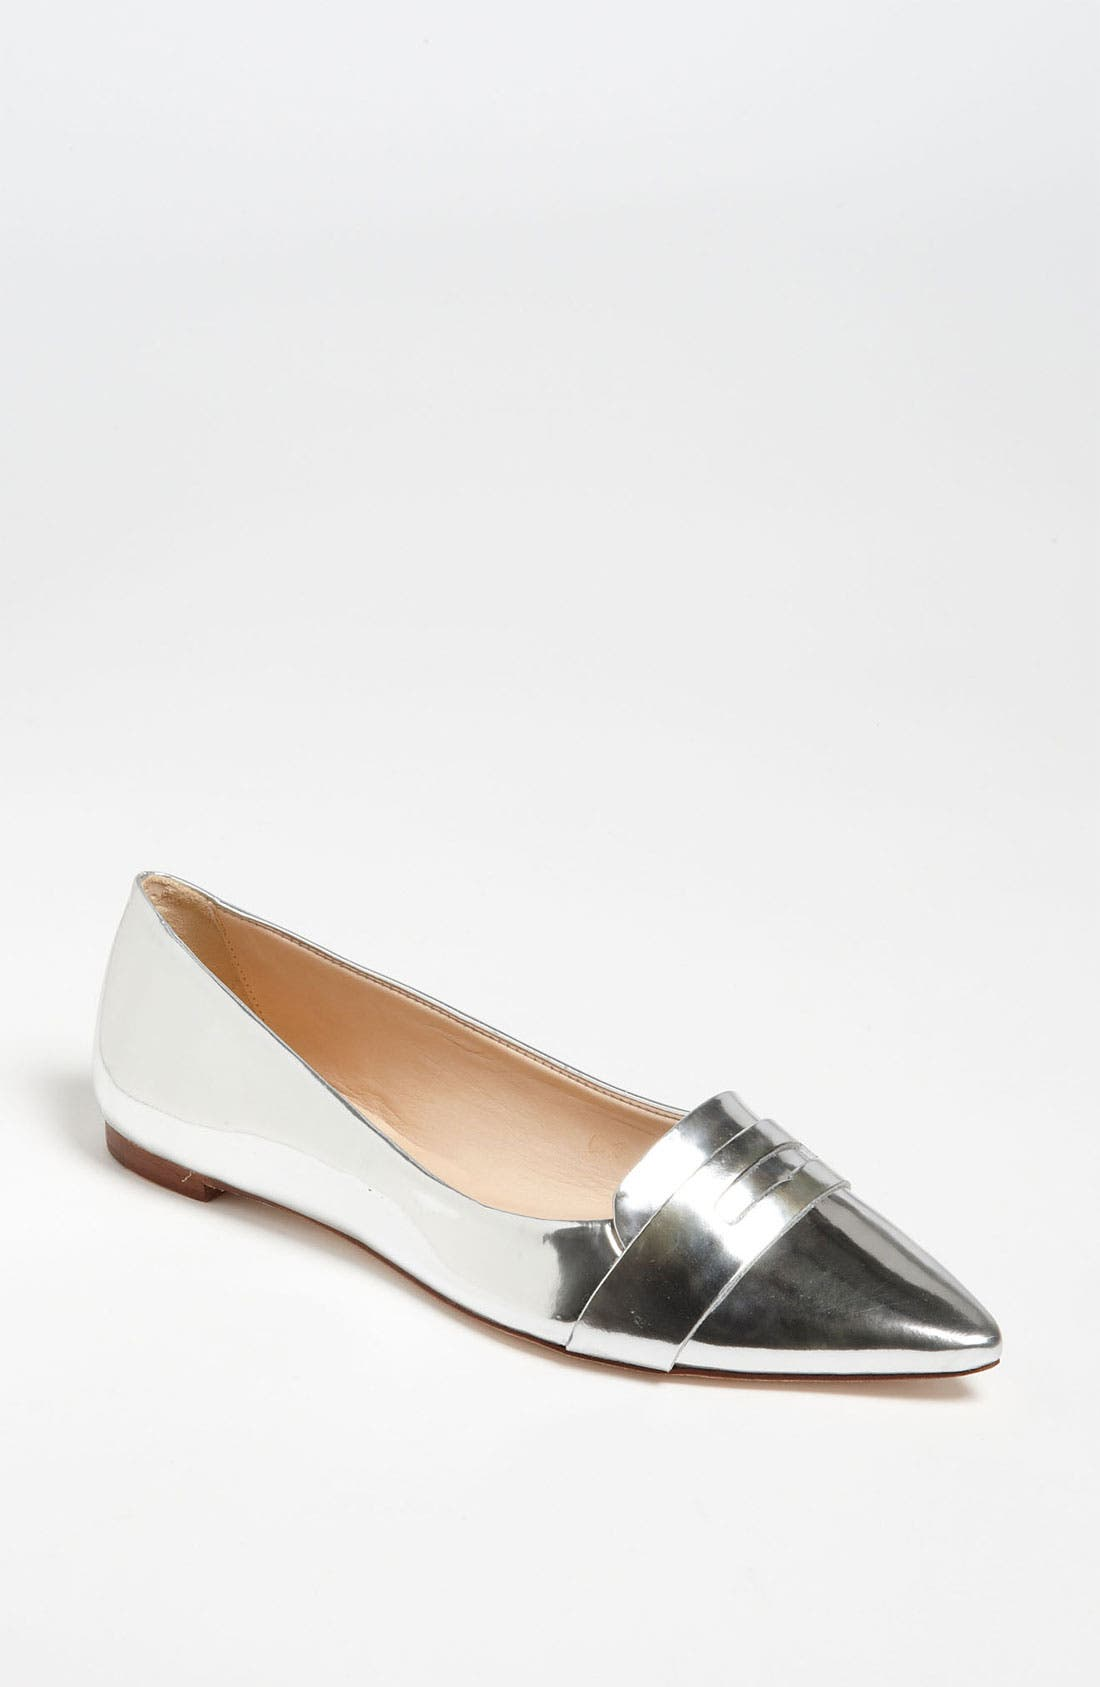 Alternate Image 1 Selected - kate spade new york 'gwen' flat